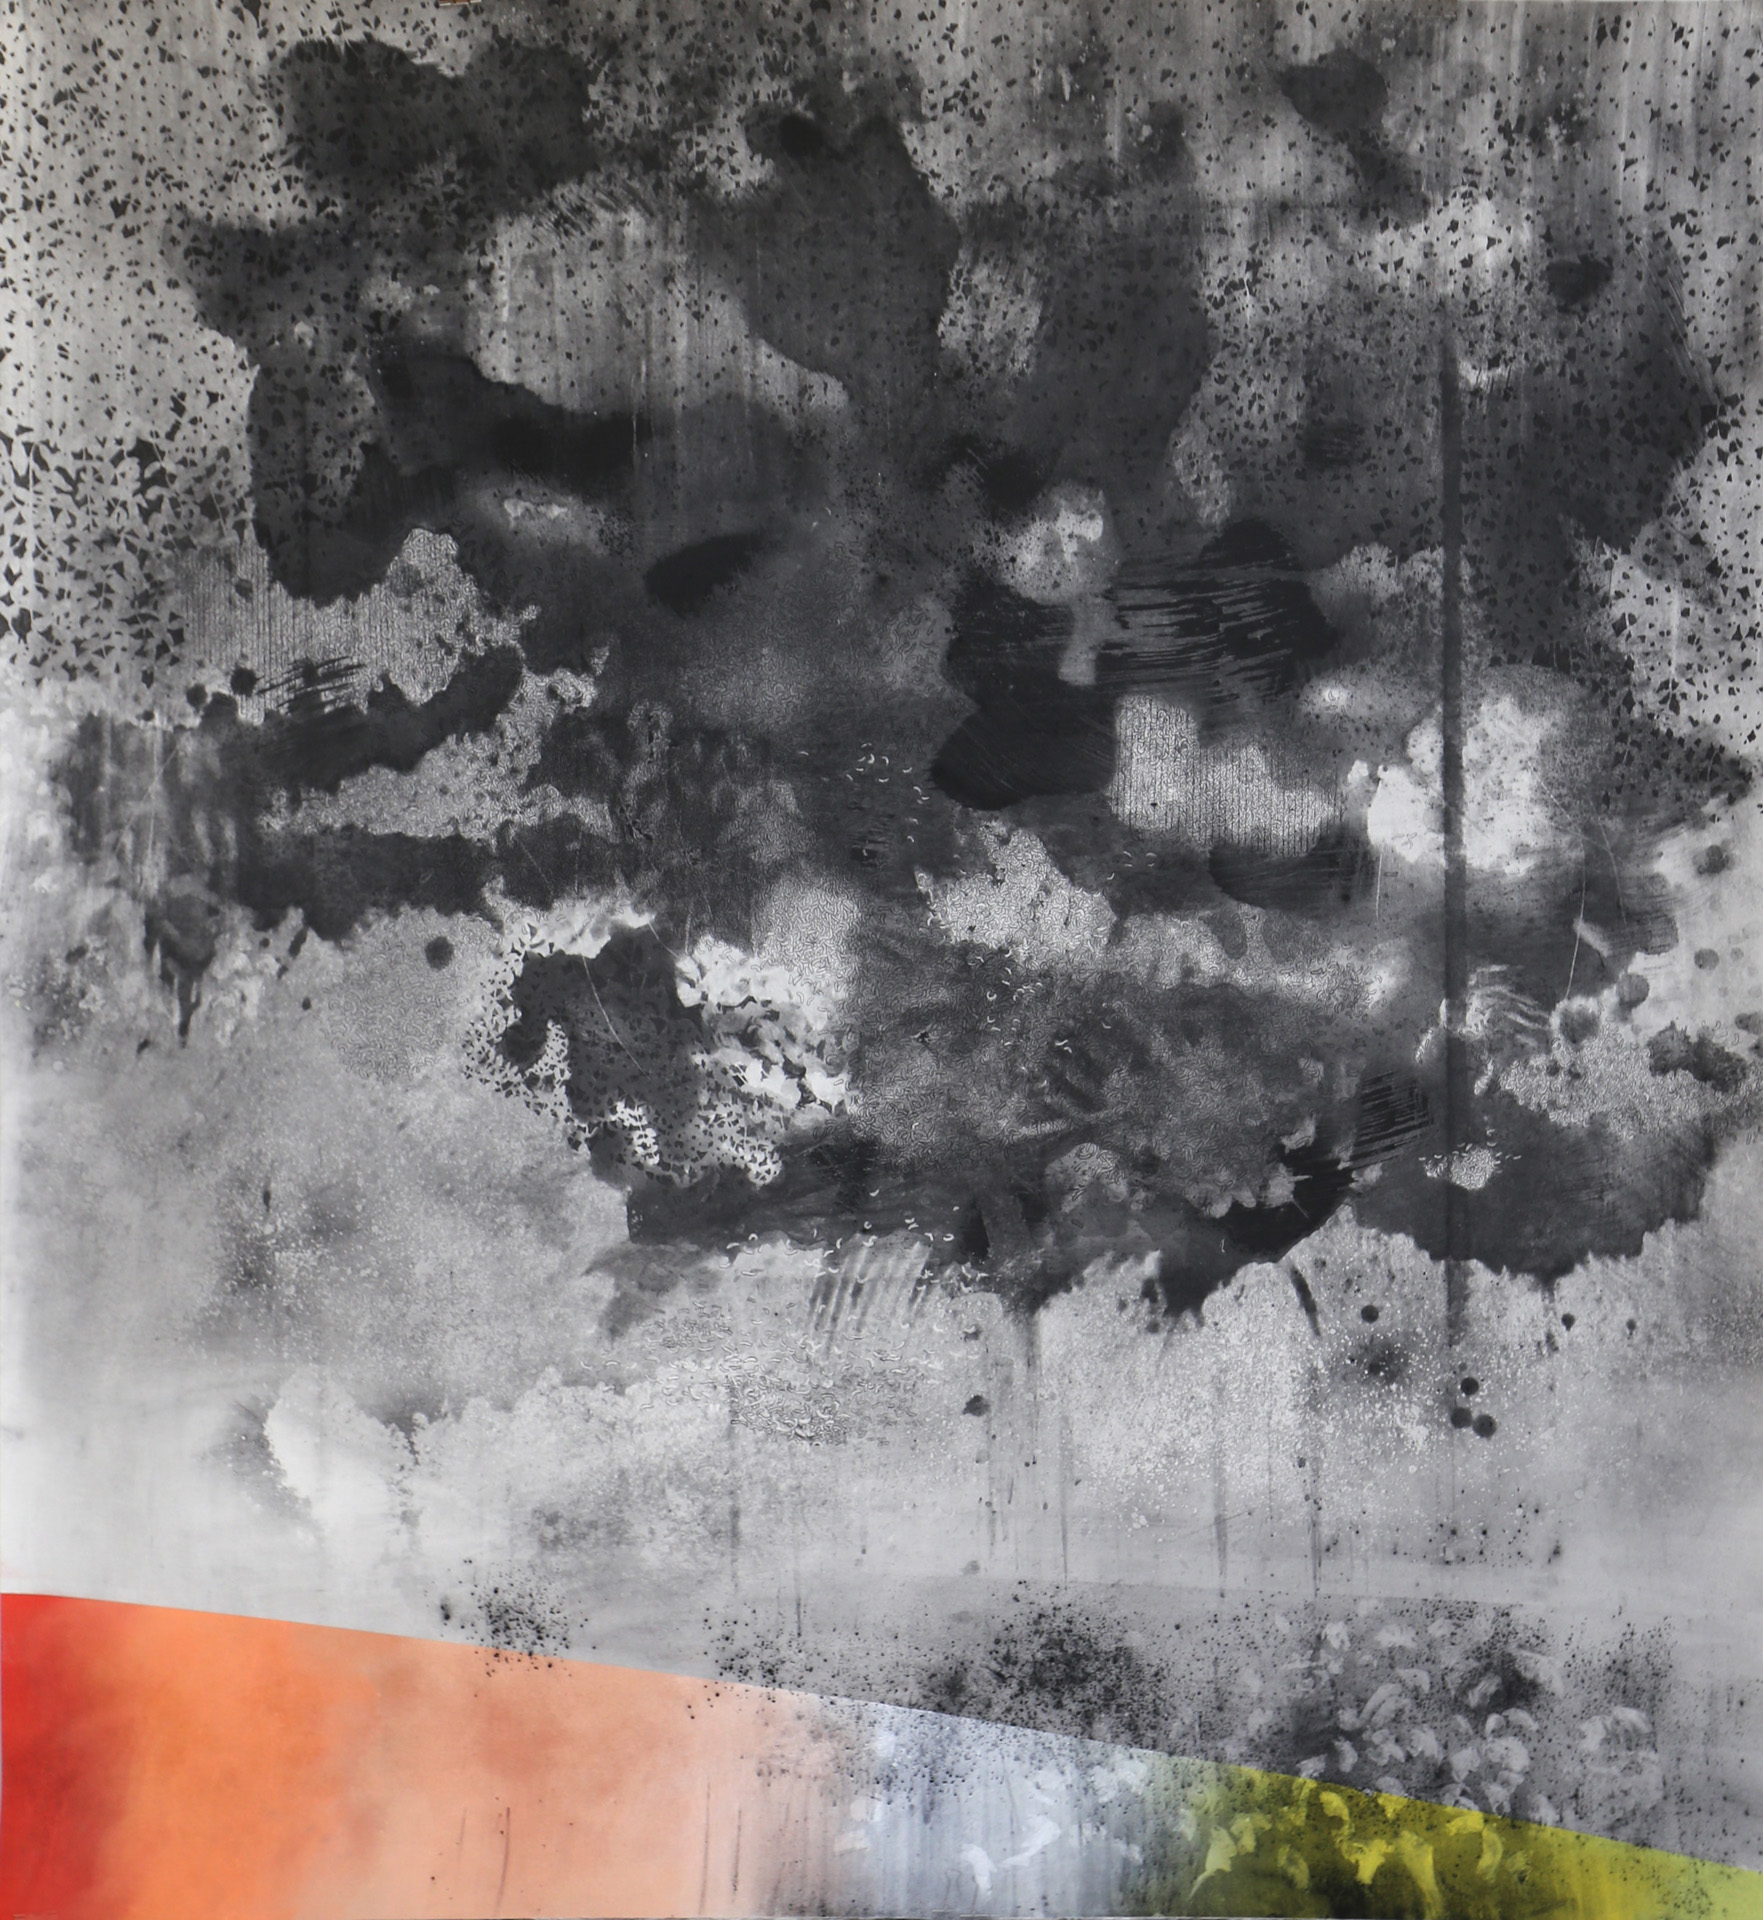 Nora Mona Bach – Besuch, 2020, pastel, charcoal on paper, 220 x 240 cm